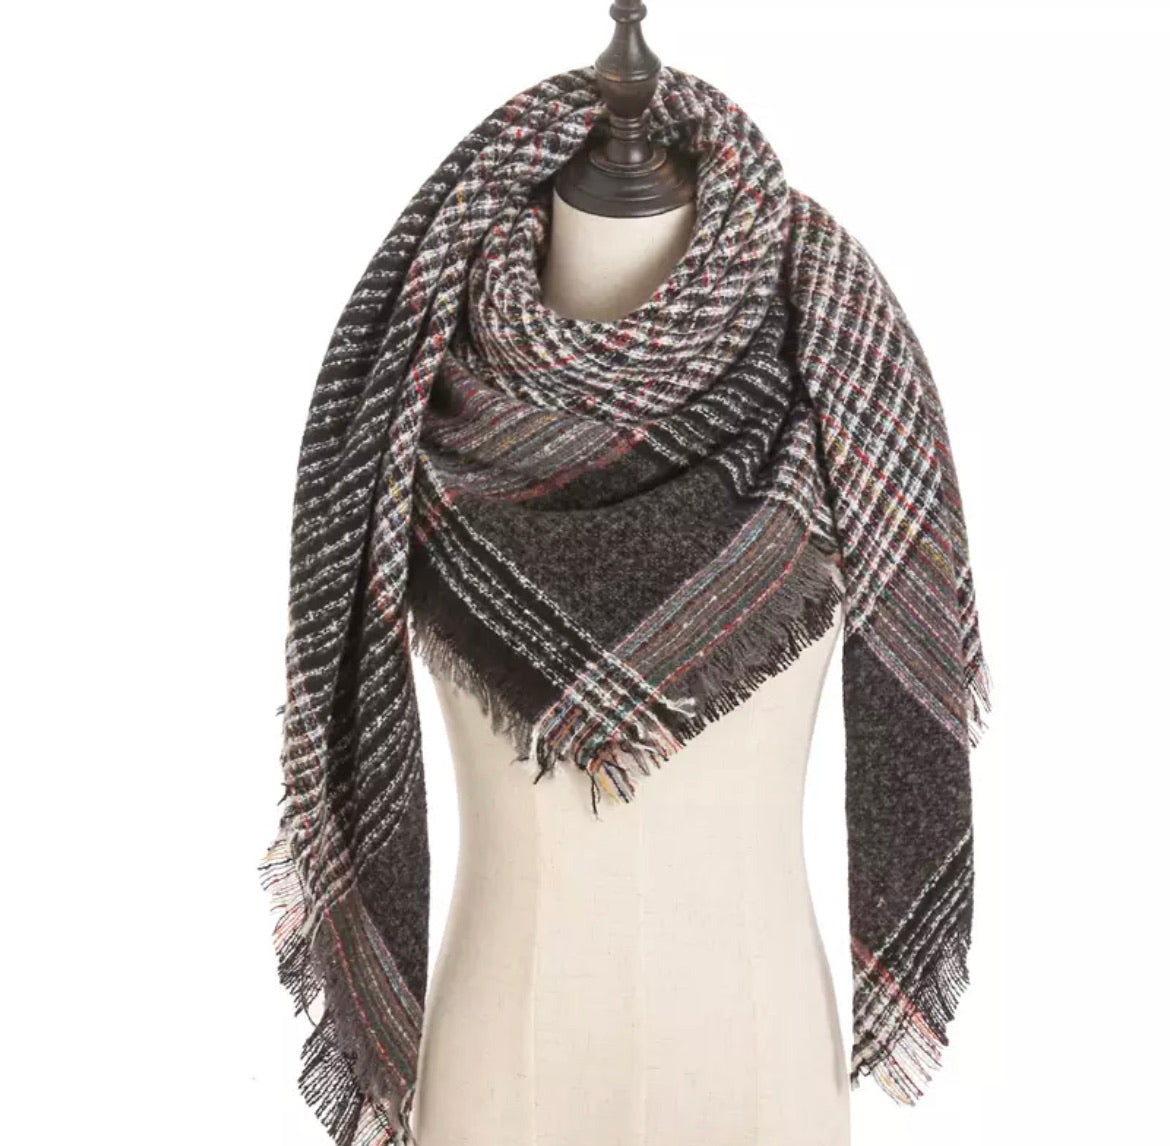 Kaleidoscope Charcoal Plaid Triangle Blanket Scarf